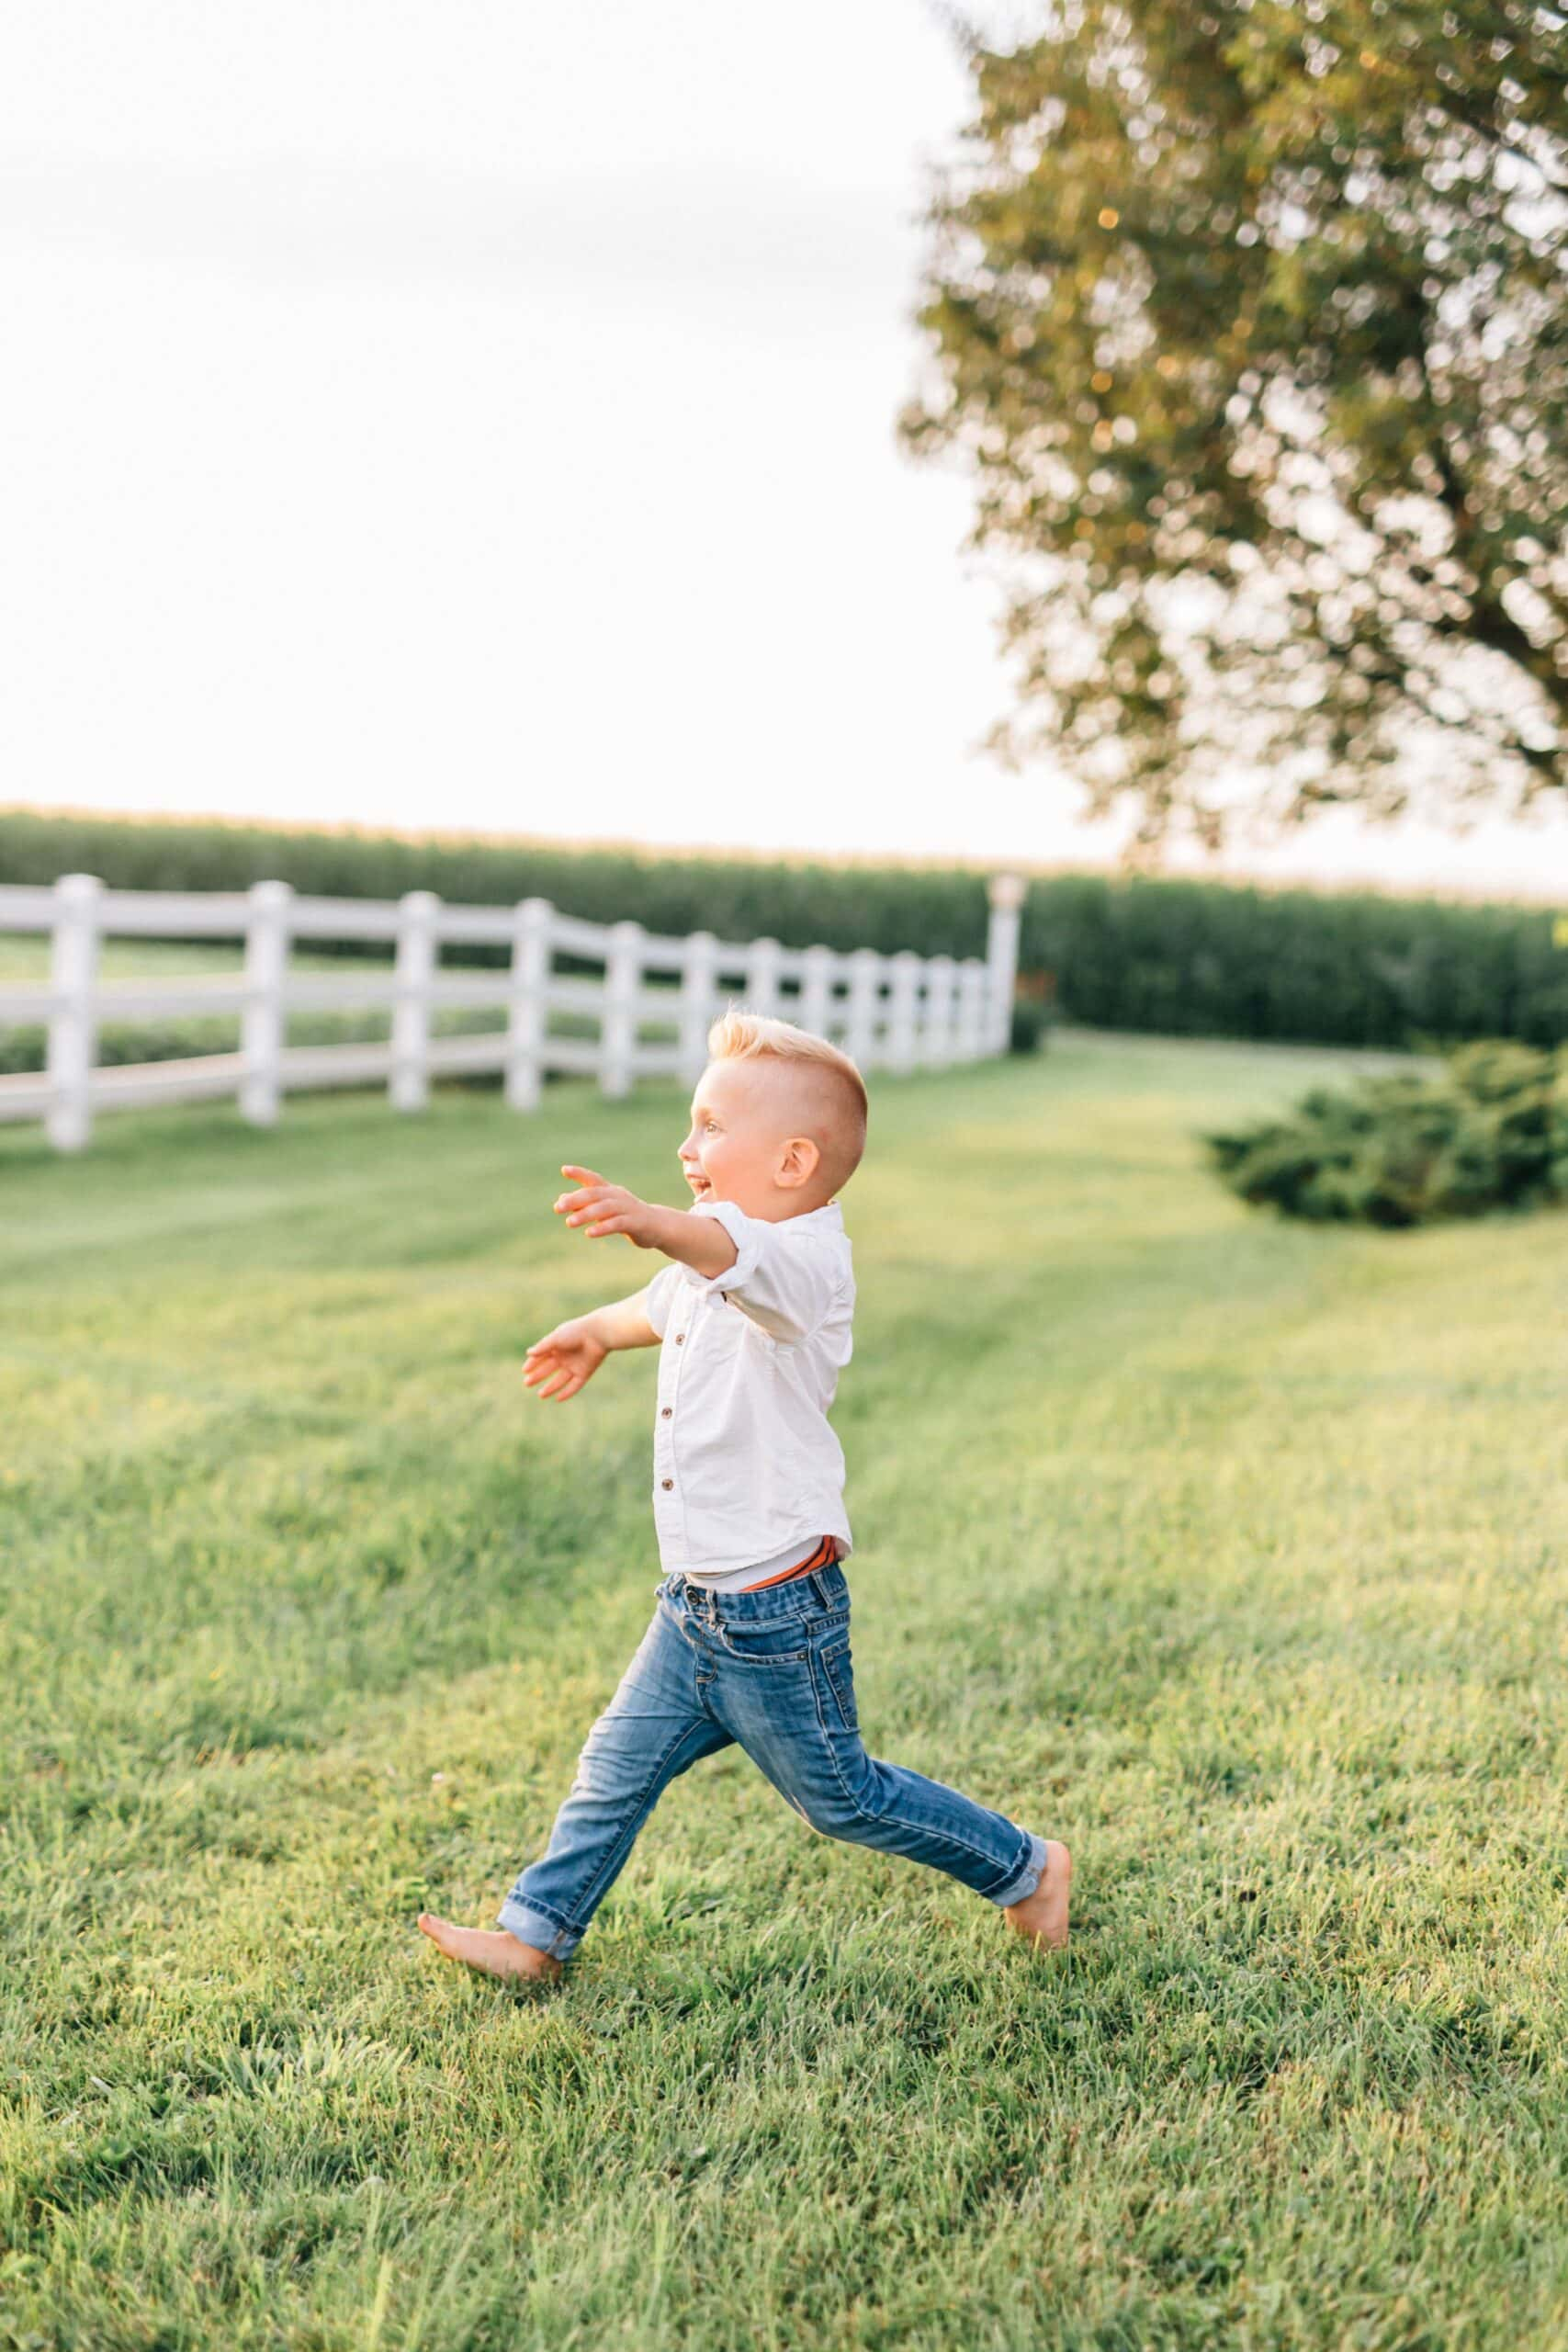 Toddler boy runs on a lawn.